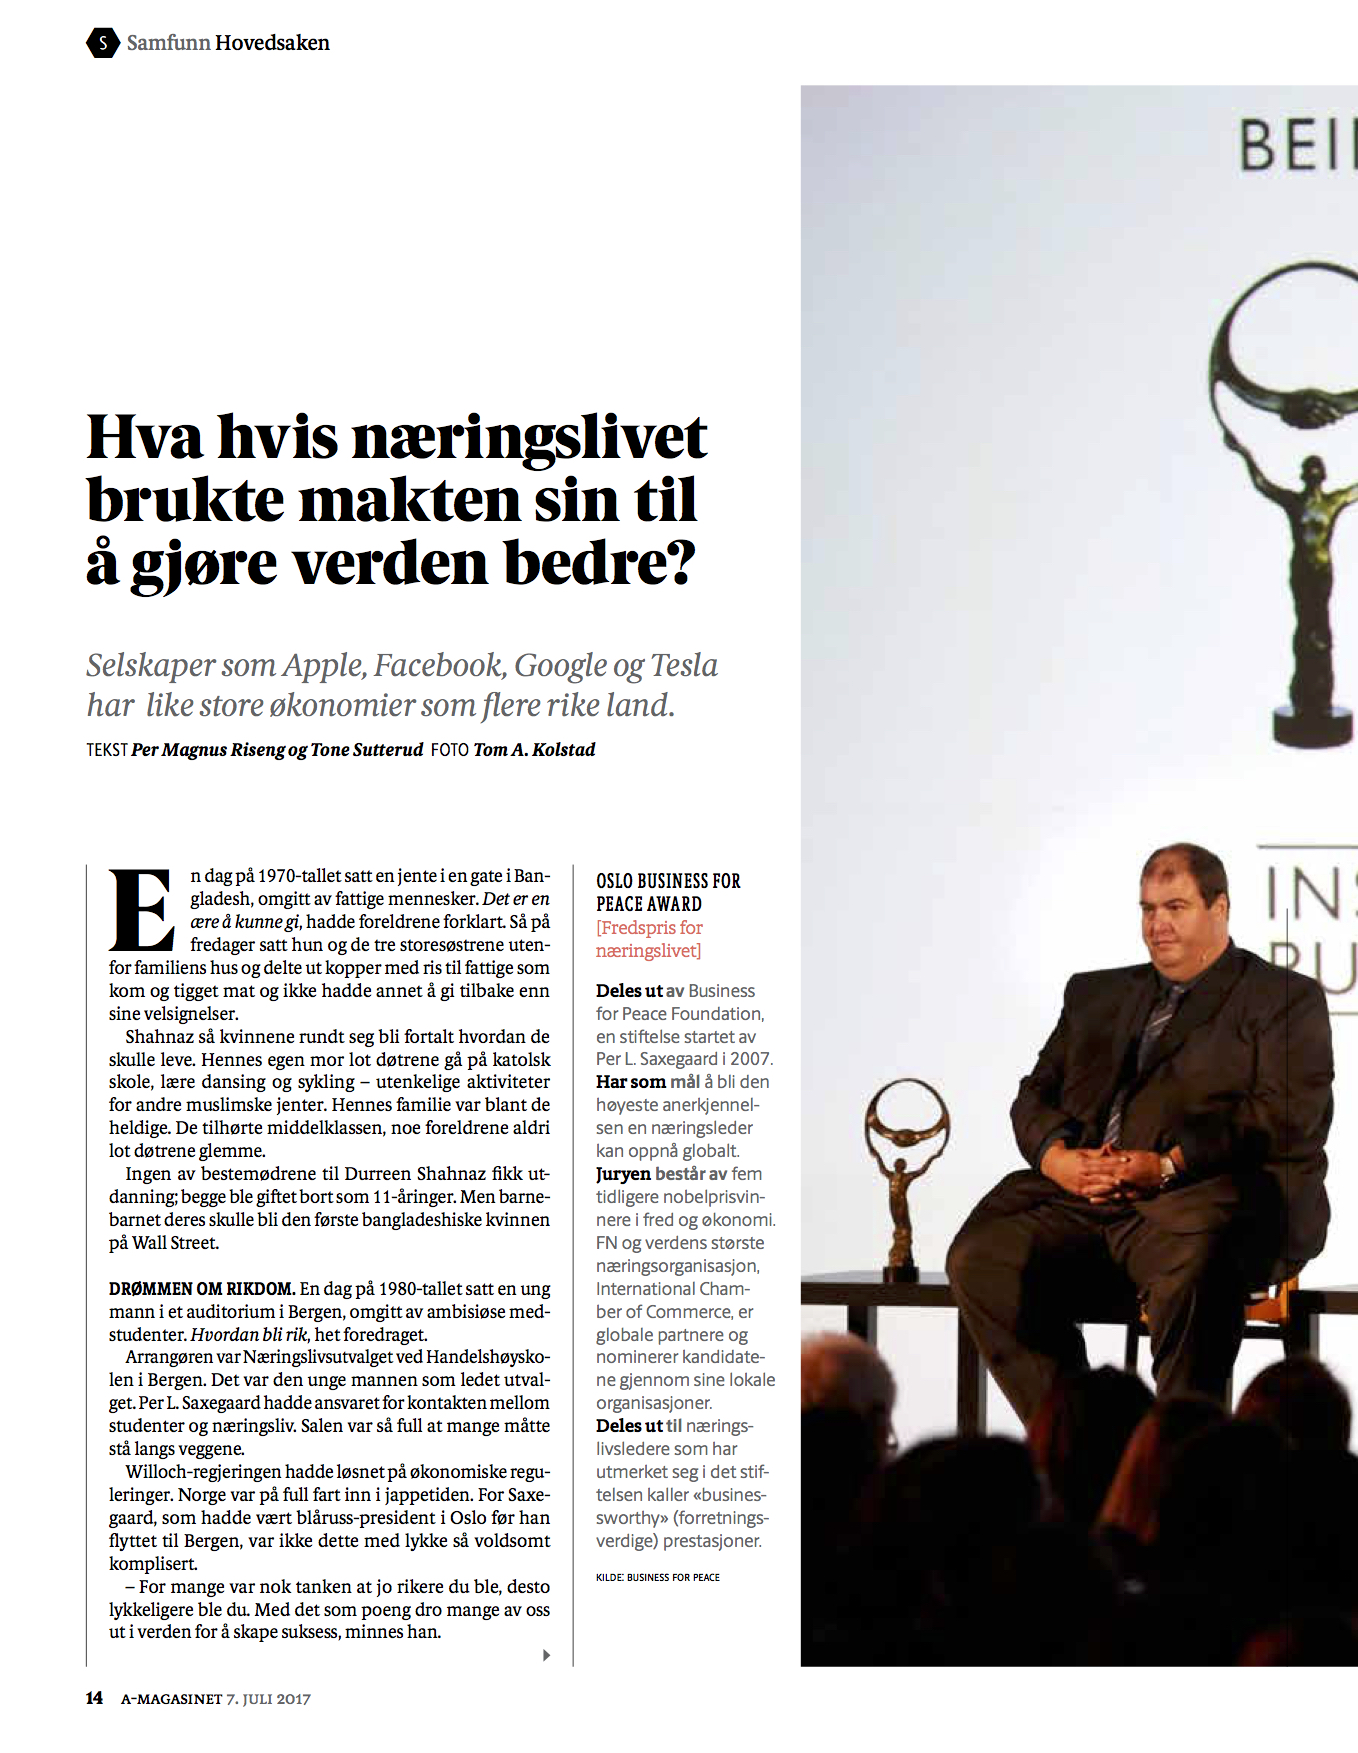 BusinessforPeace_Aftenposten_A-magasinet Page 3